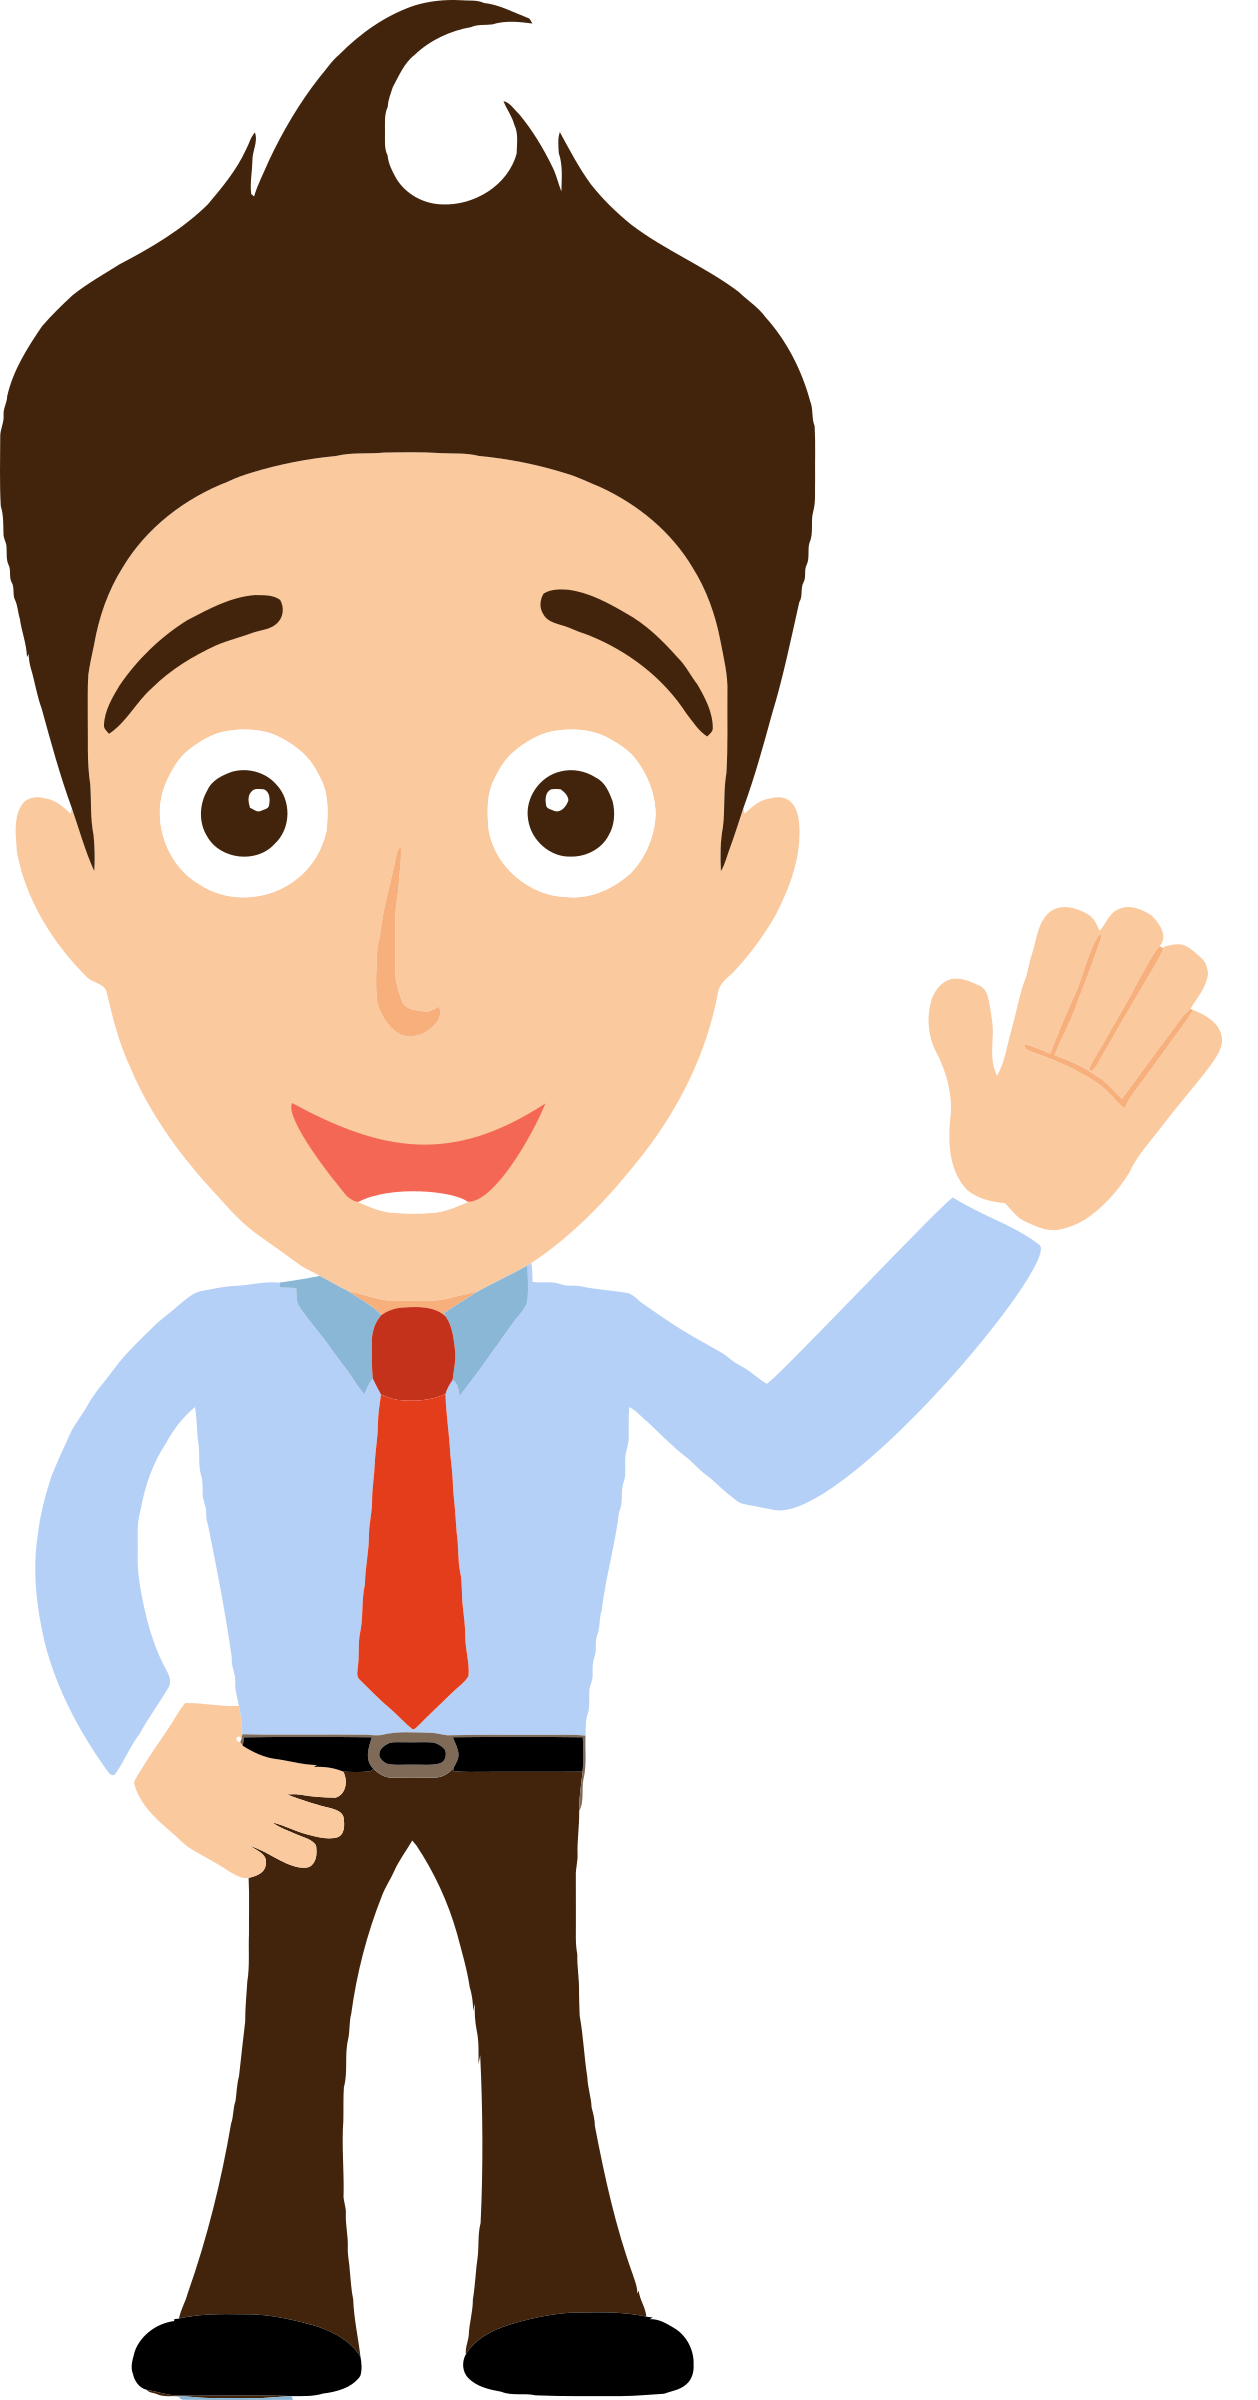 Man clipart png. Collection of office